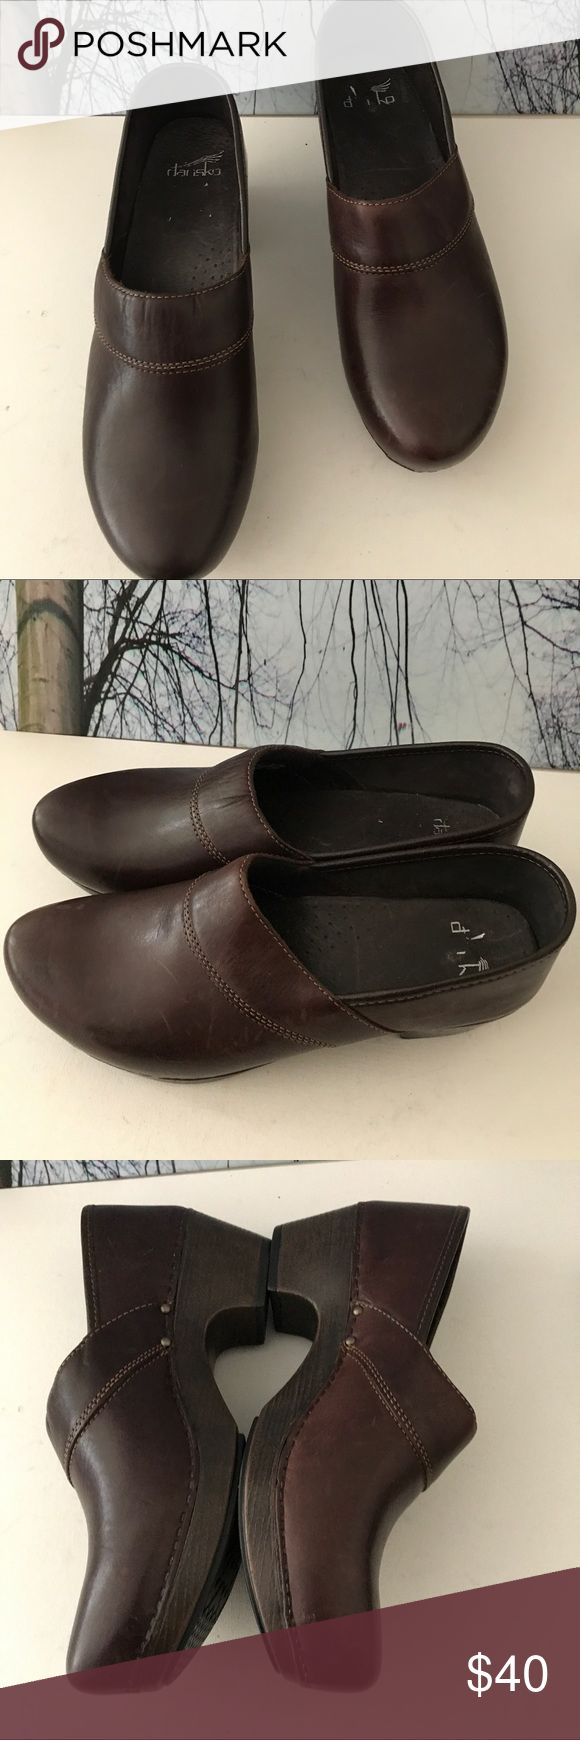 ❇️VERY FIRM ‼️‼️Clogs. Sale till 11/26/17✅ Dansko  Professional Clogs in gently used Condition. Barley worn Shoes, looks New. Size:11 Dansko Shoes Mules & Clogs